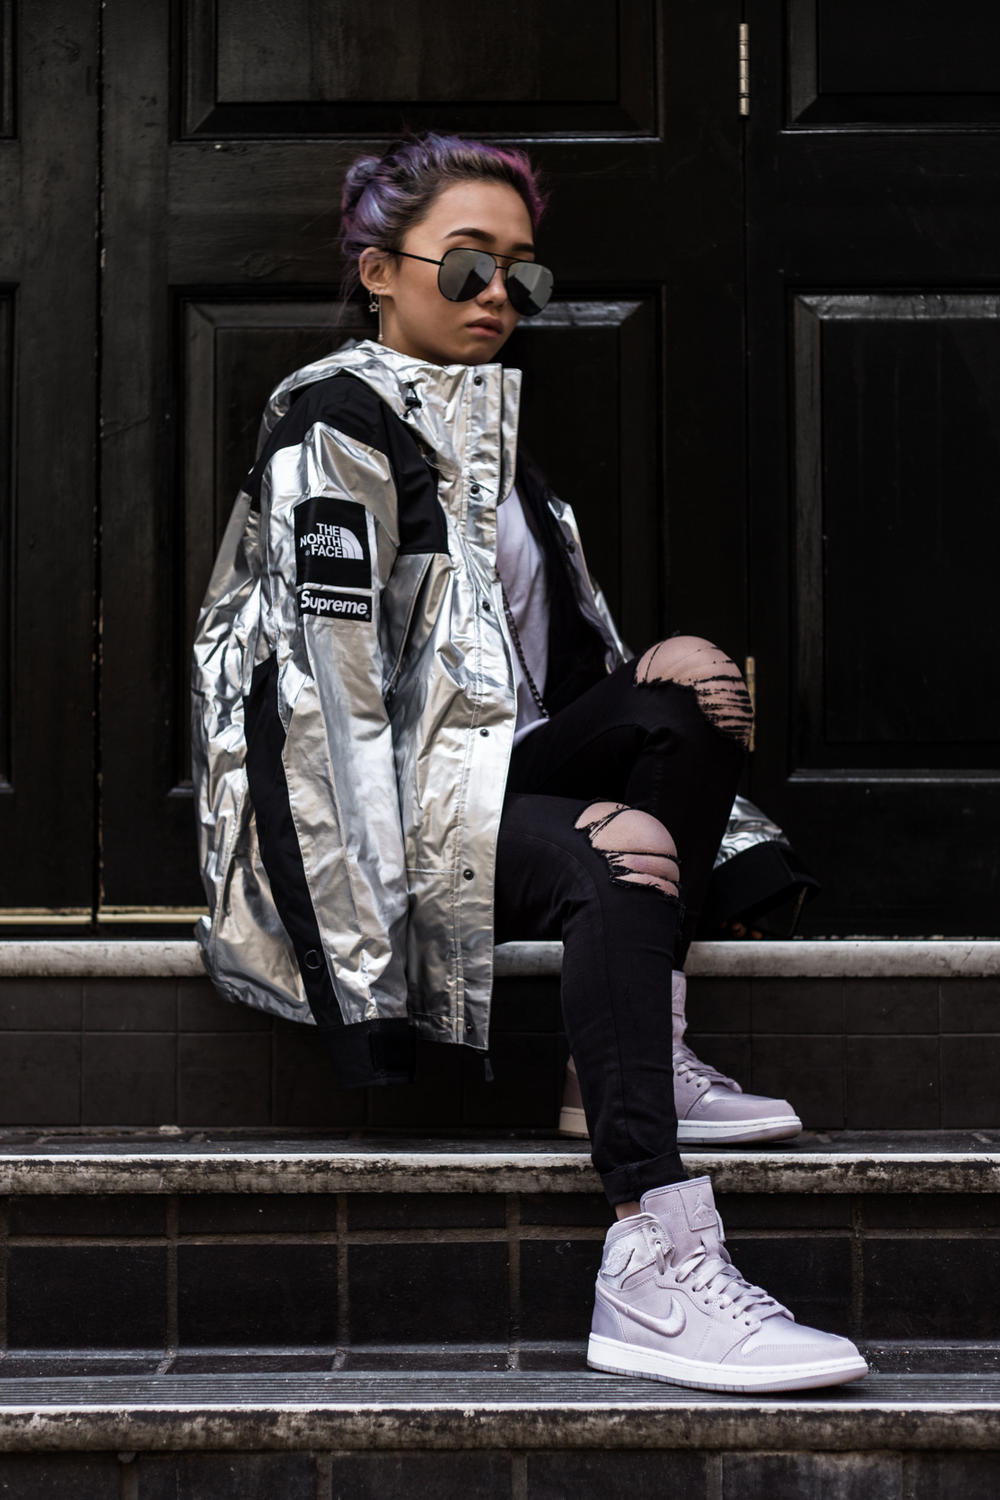 Supreme The North Face Spring/Summer 2018 Streetsnaps Street Style London Paris Tokyo New York Store Release Drop Soho Clothing For Sale Buy Shop Online Metallic